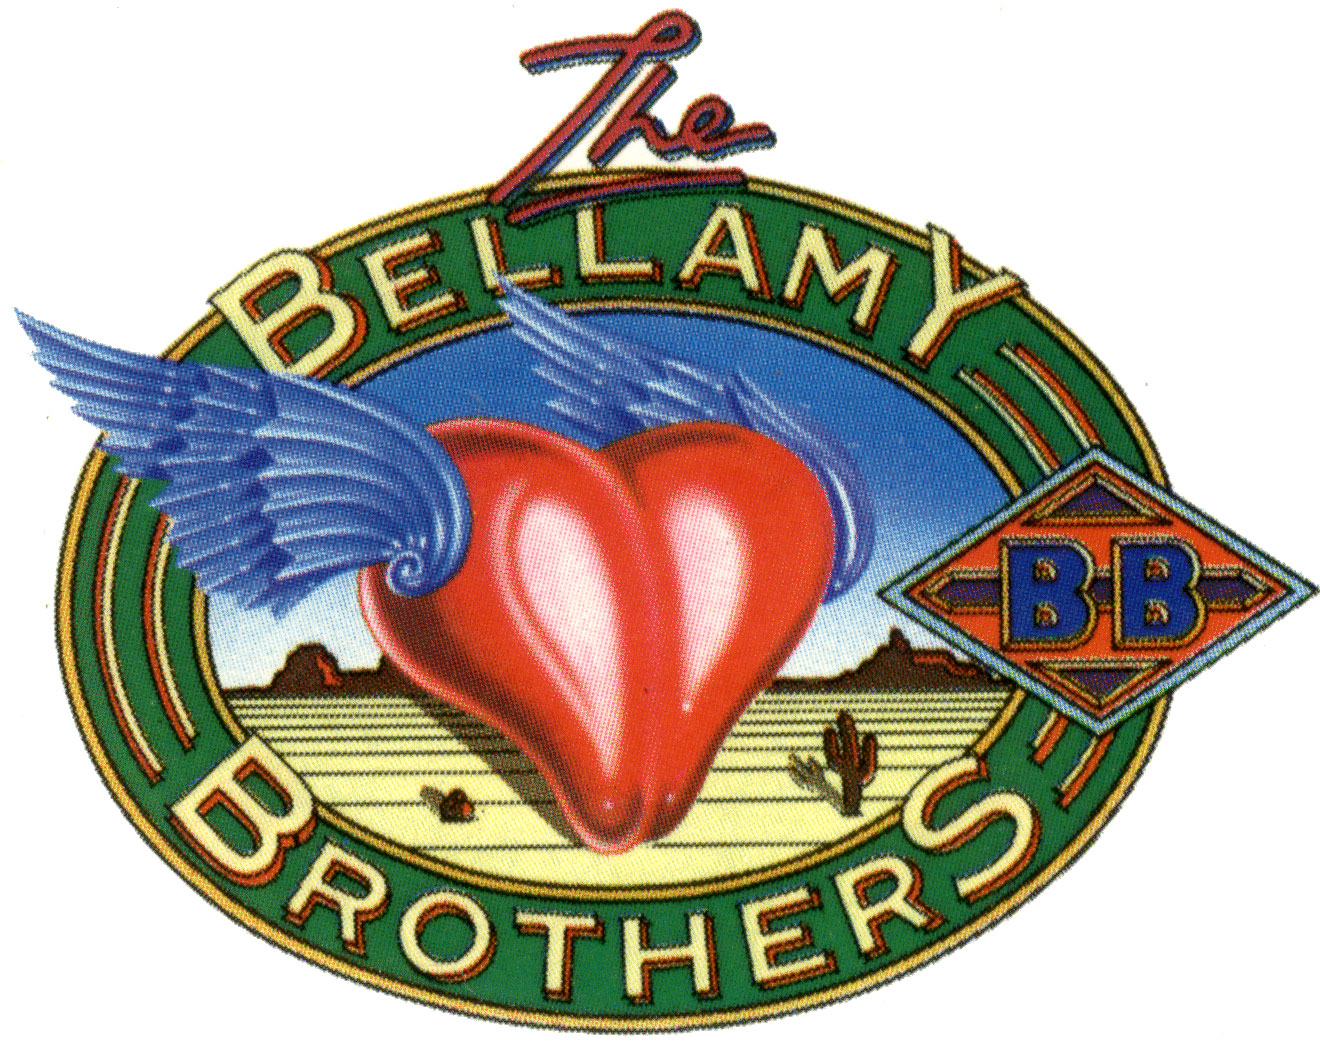 bellamy big and beautiful singles The bellamy brothers's albums: single man and his wife if i said you had a beautiful body the bellamy brothers 3:10.